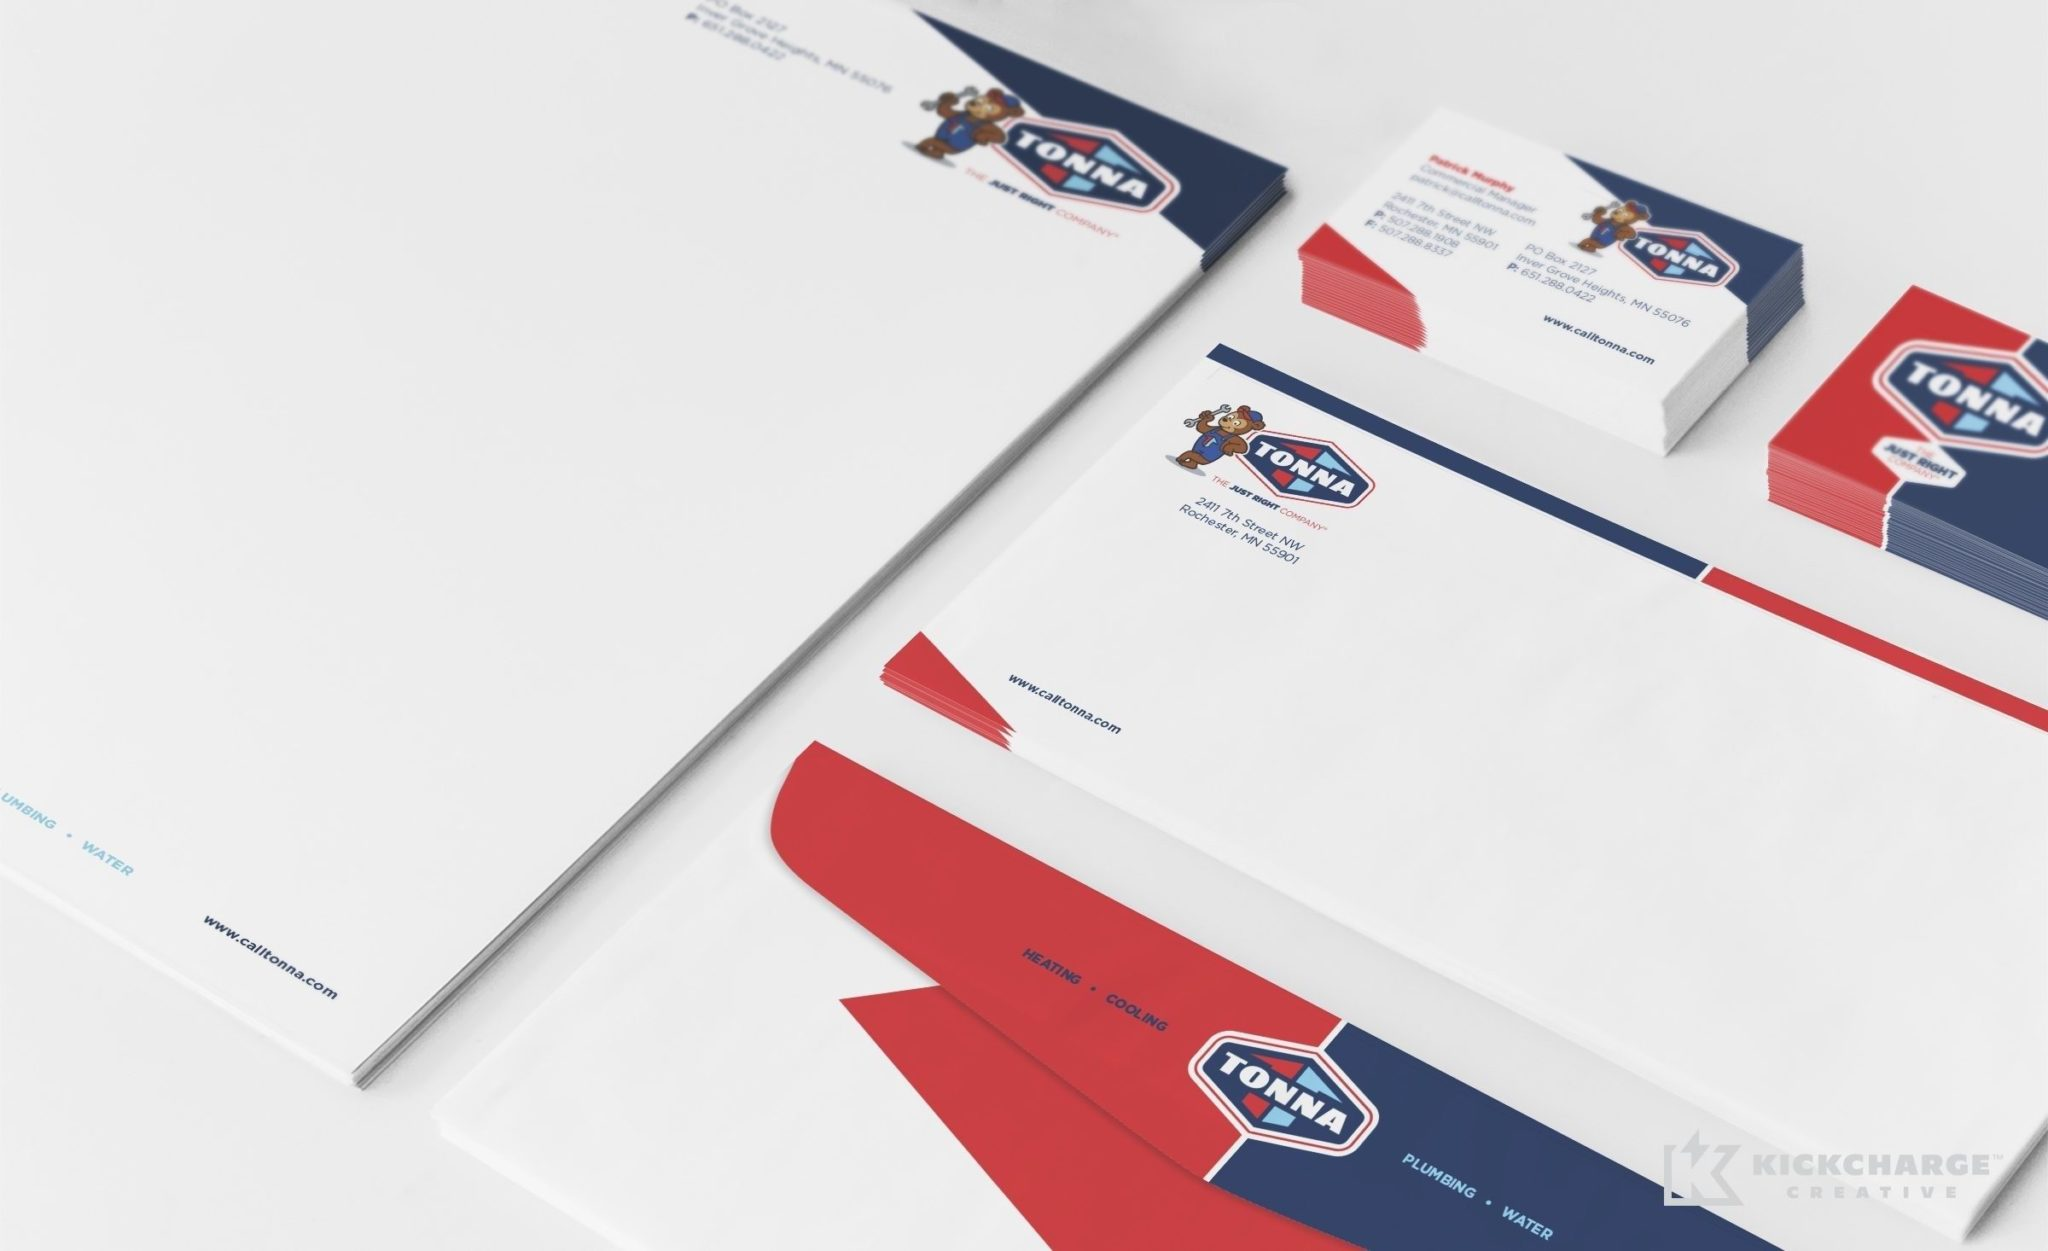 Stationery design for Tonna Mechanical, a Minnesota-based HVAC & plumbing company.